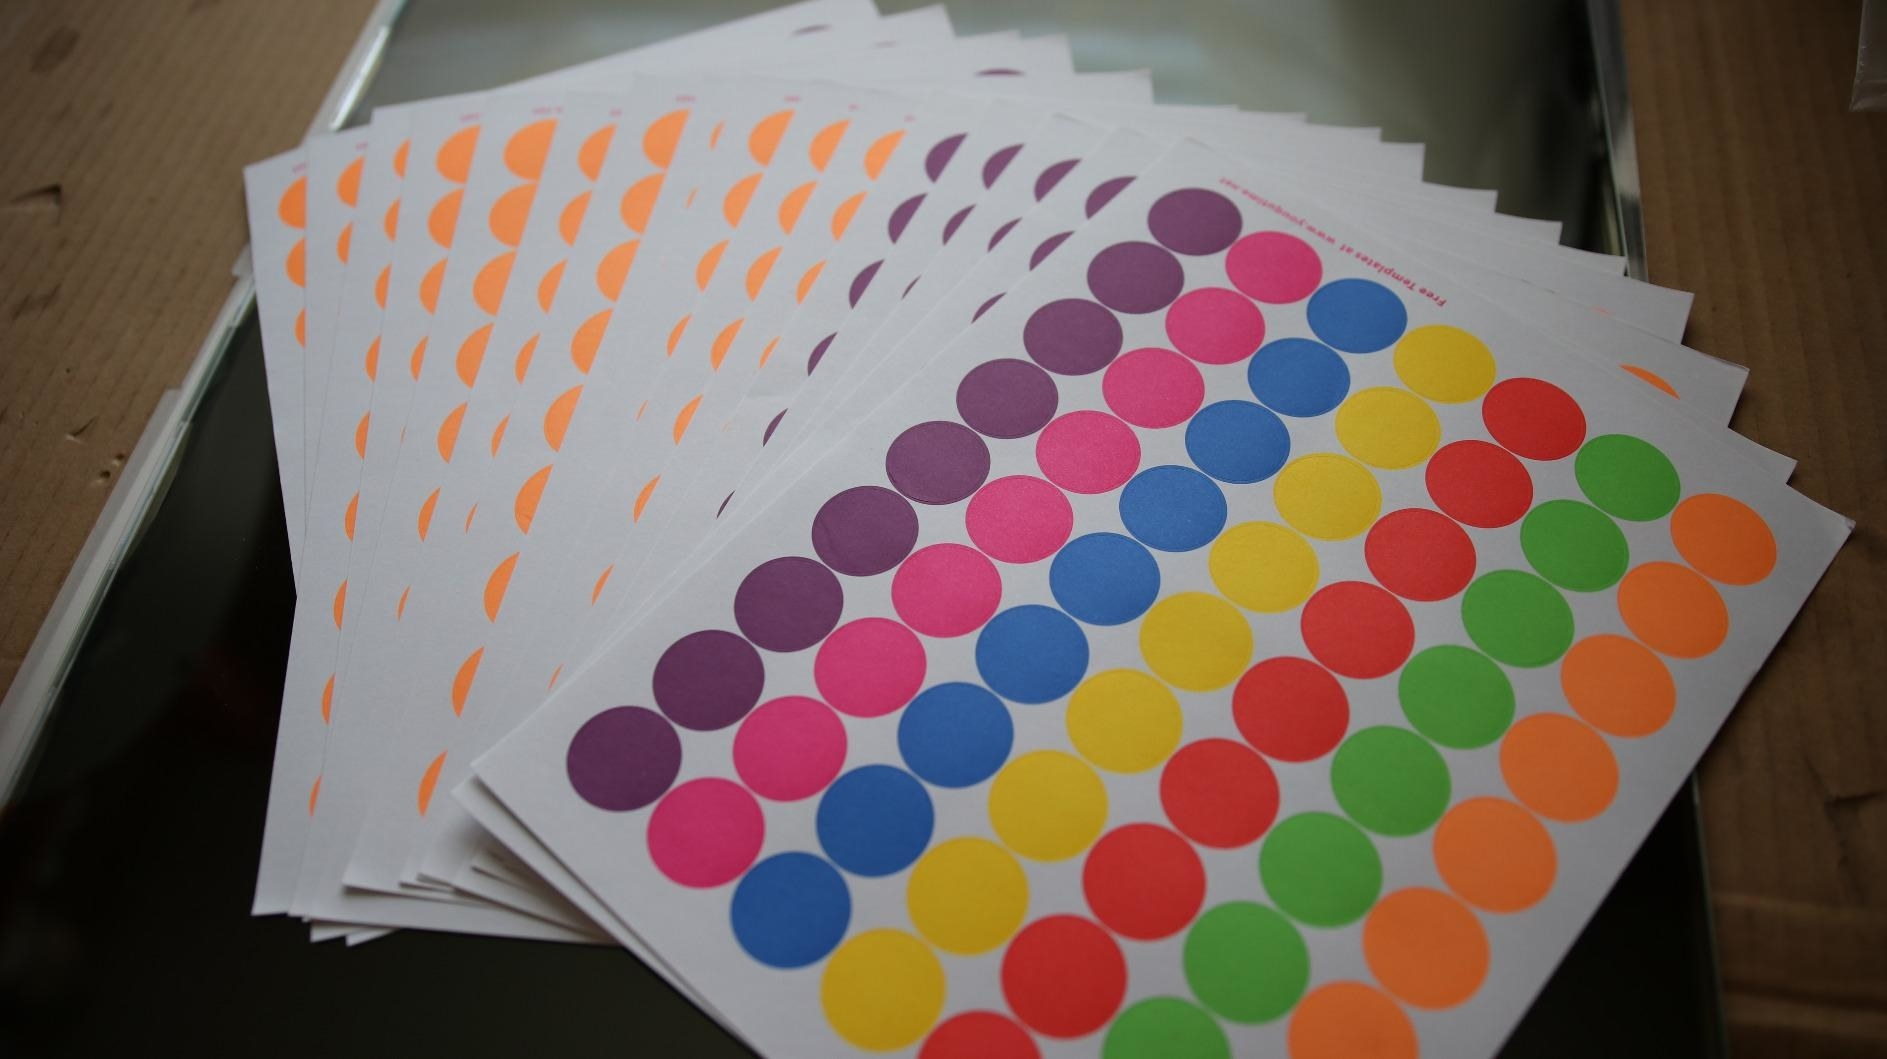 reviewer image of the pack of color coding circle labels